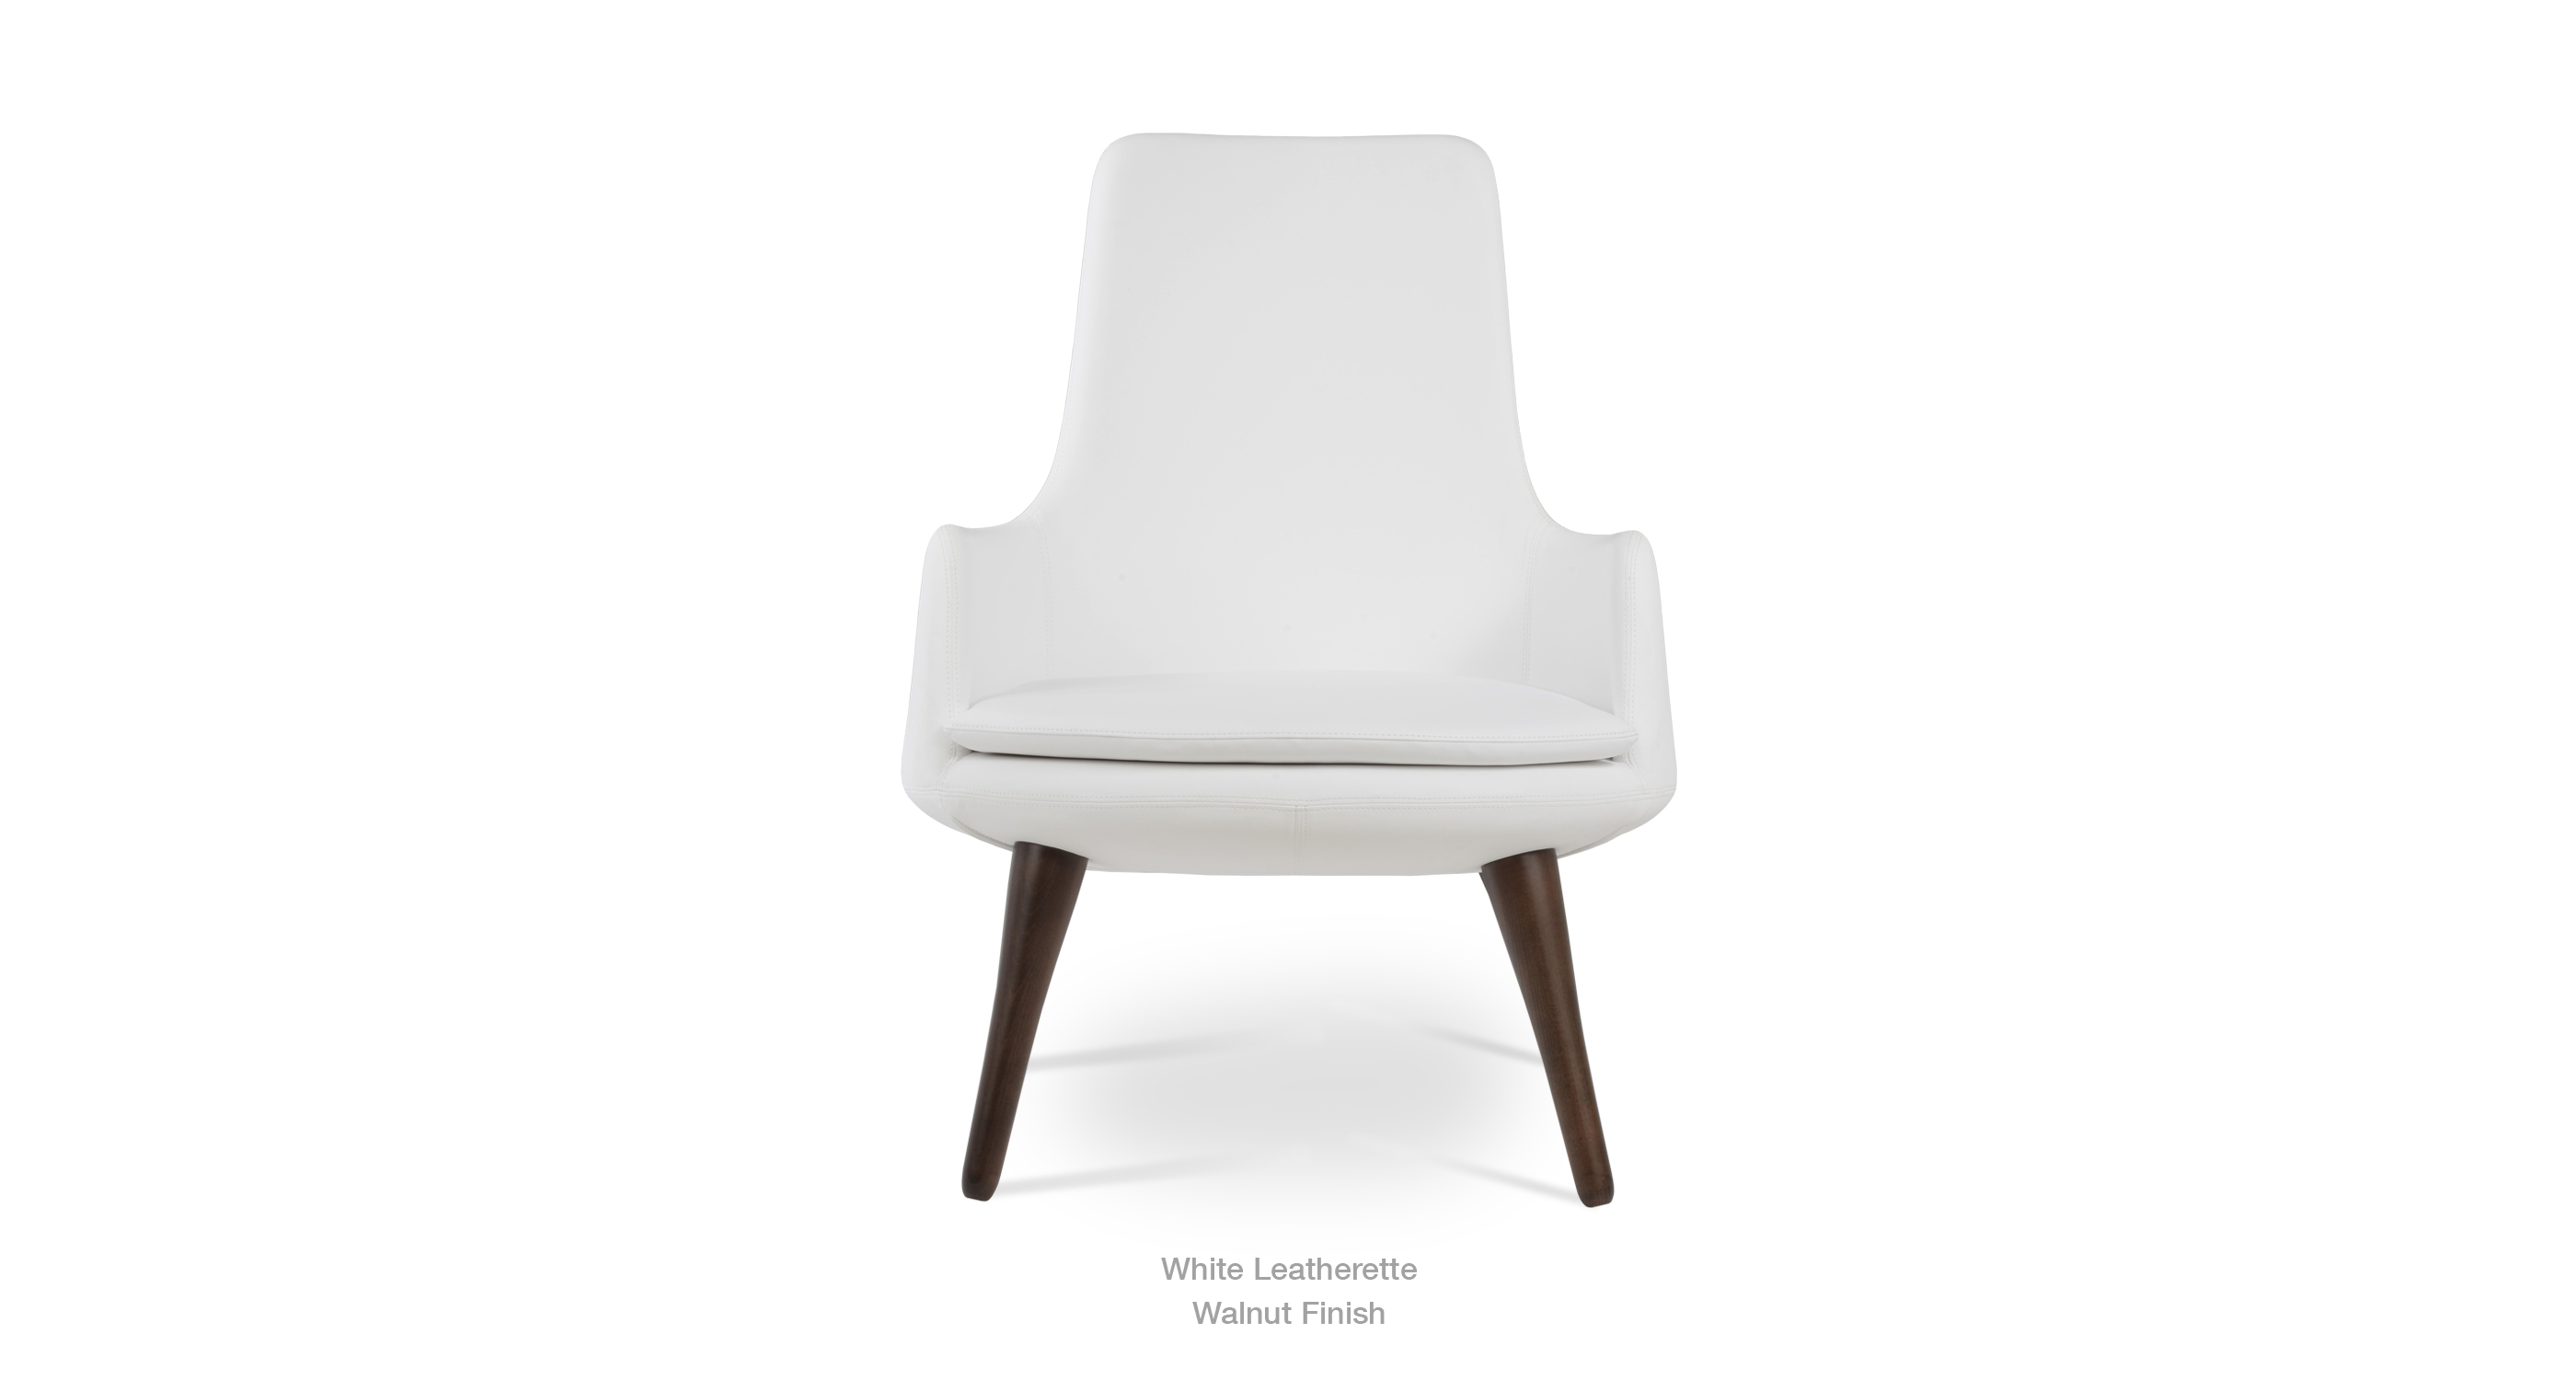 2020 02 04 Dervish Hb White Leatherette Walnut